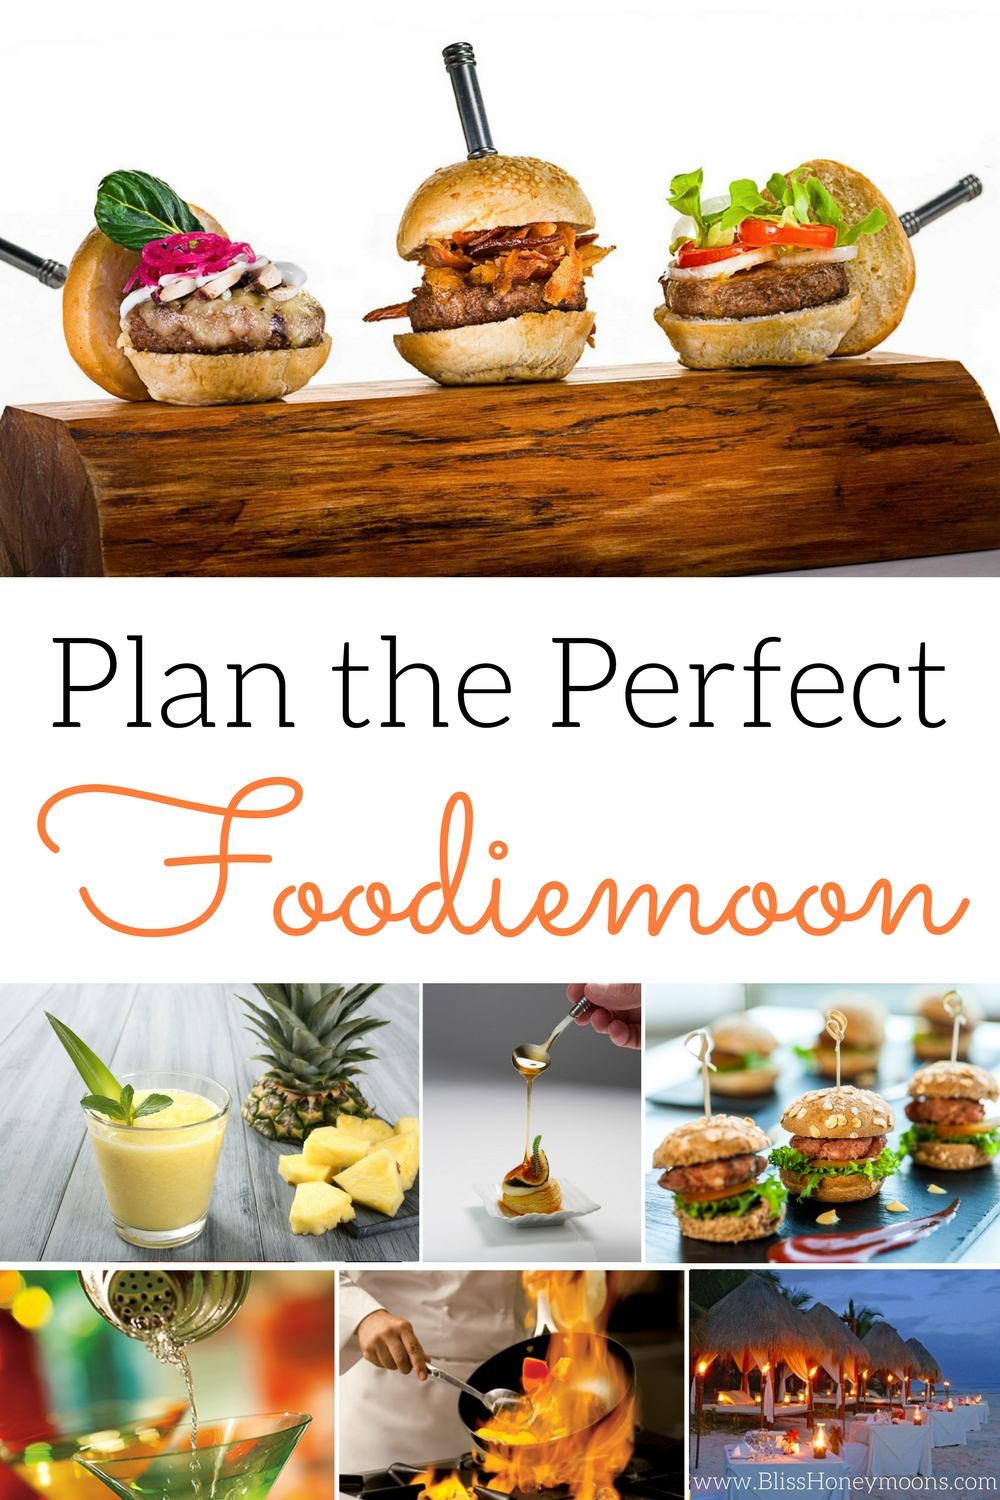 Plan the perfect foodiemoon, best foodiemoon, gourmet all inclusive resorts, Karisma gourmet all inclusive, best resorts for foodies, best hotels for foodies, top locations for foodies